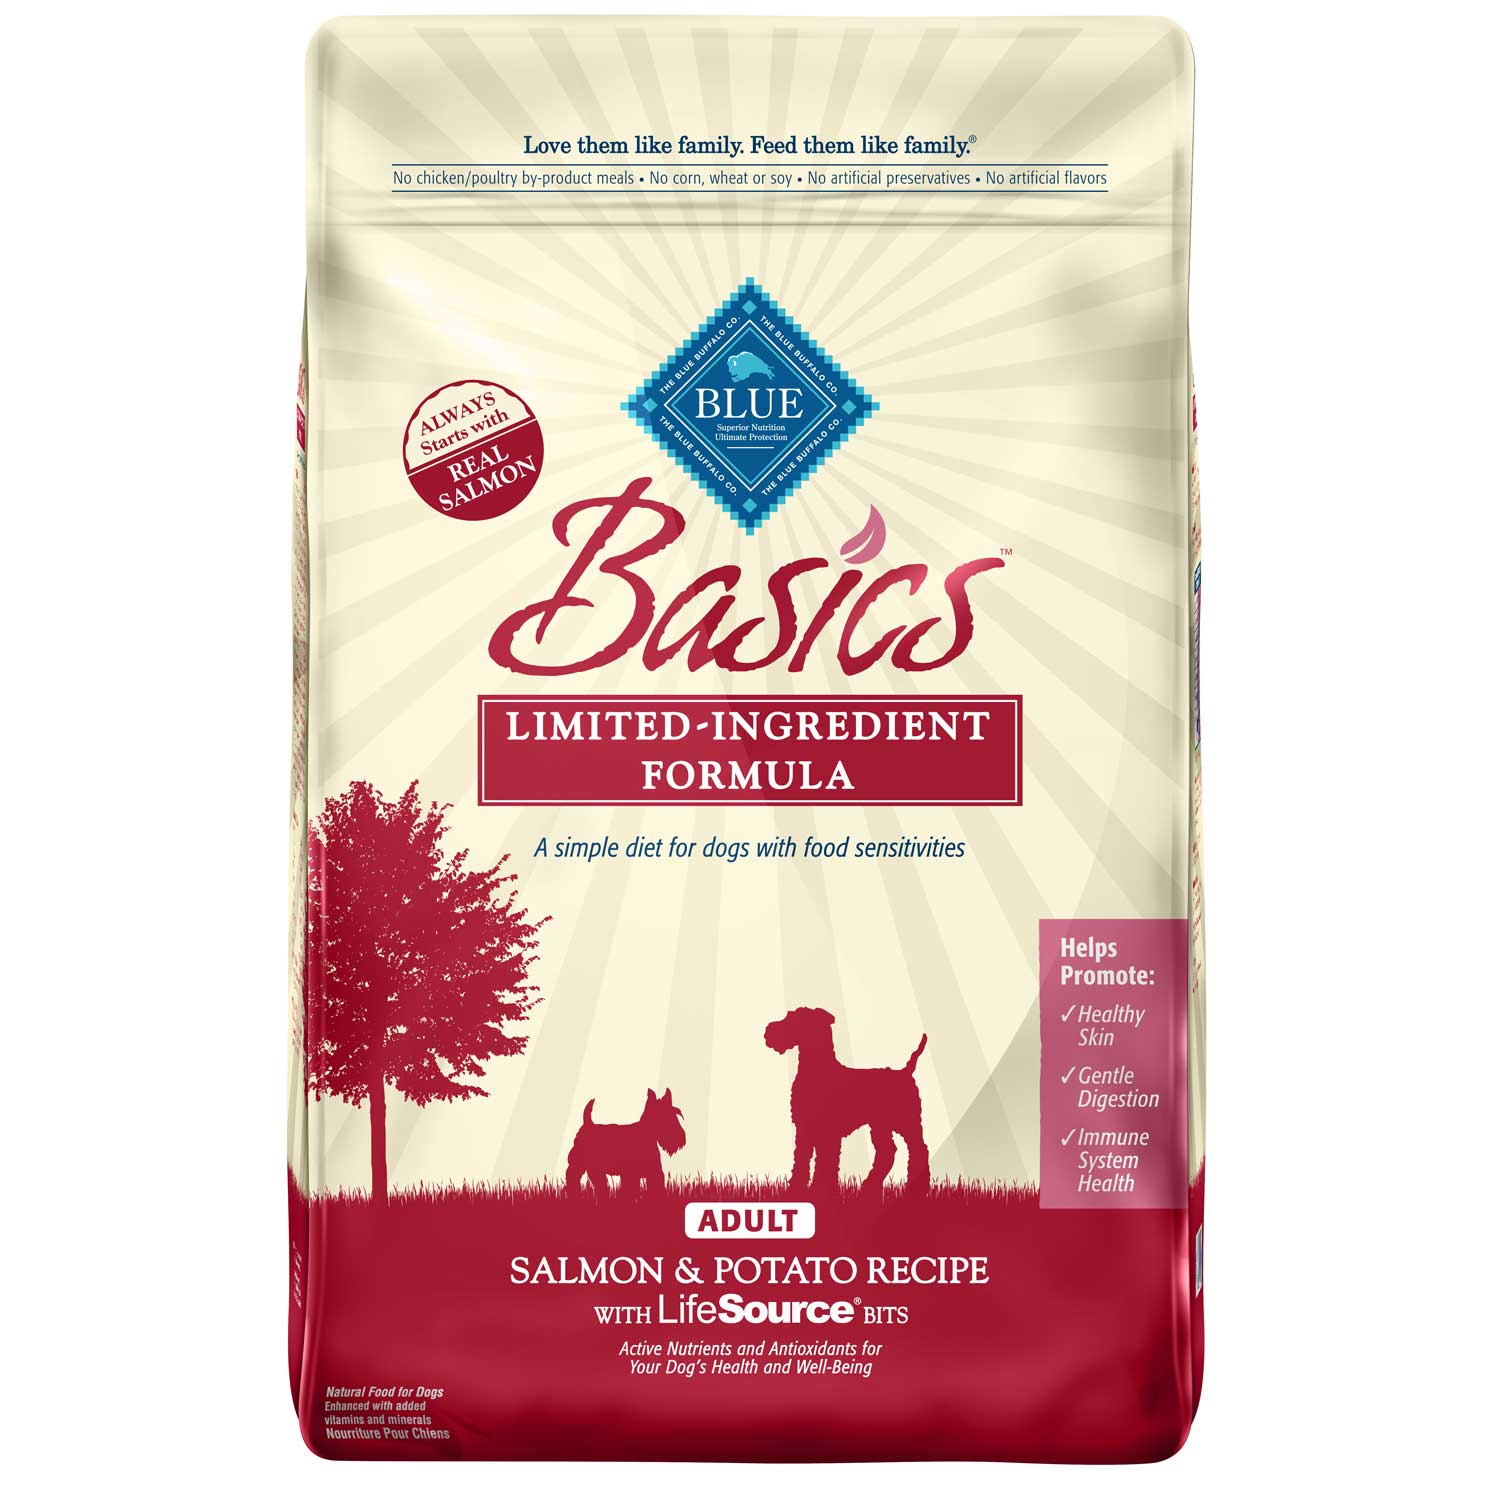 Blue Buffalo Basics Limited Ingredient Formula Salmon & Potato Recipe Adult Dry Dog Food 11lbs